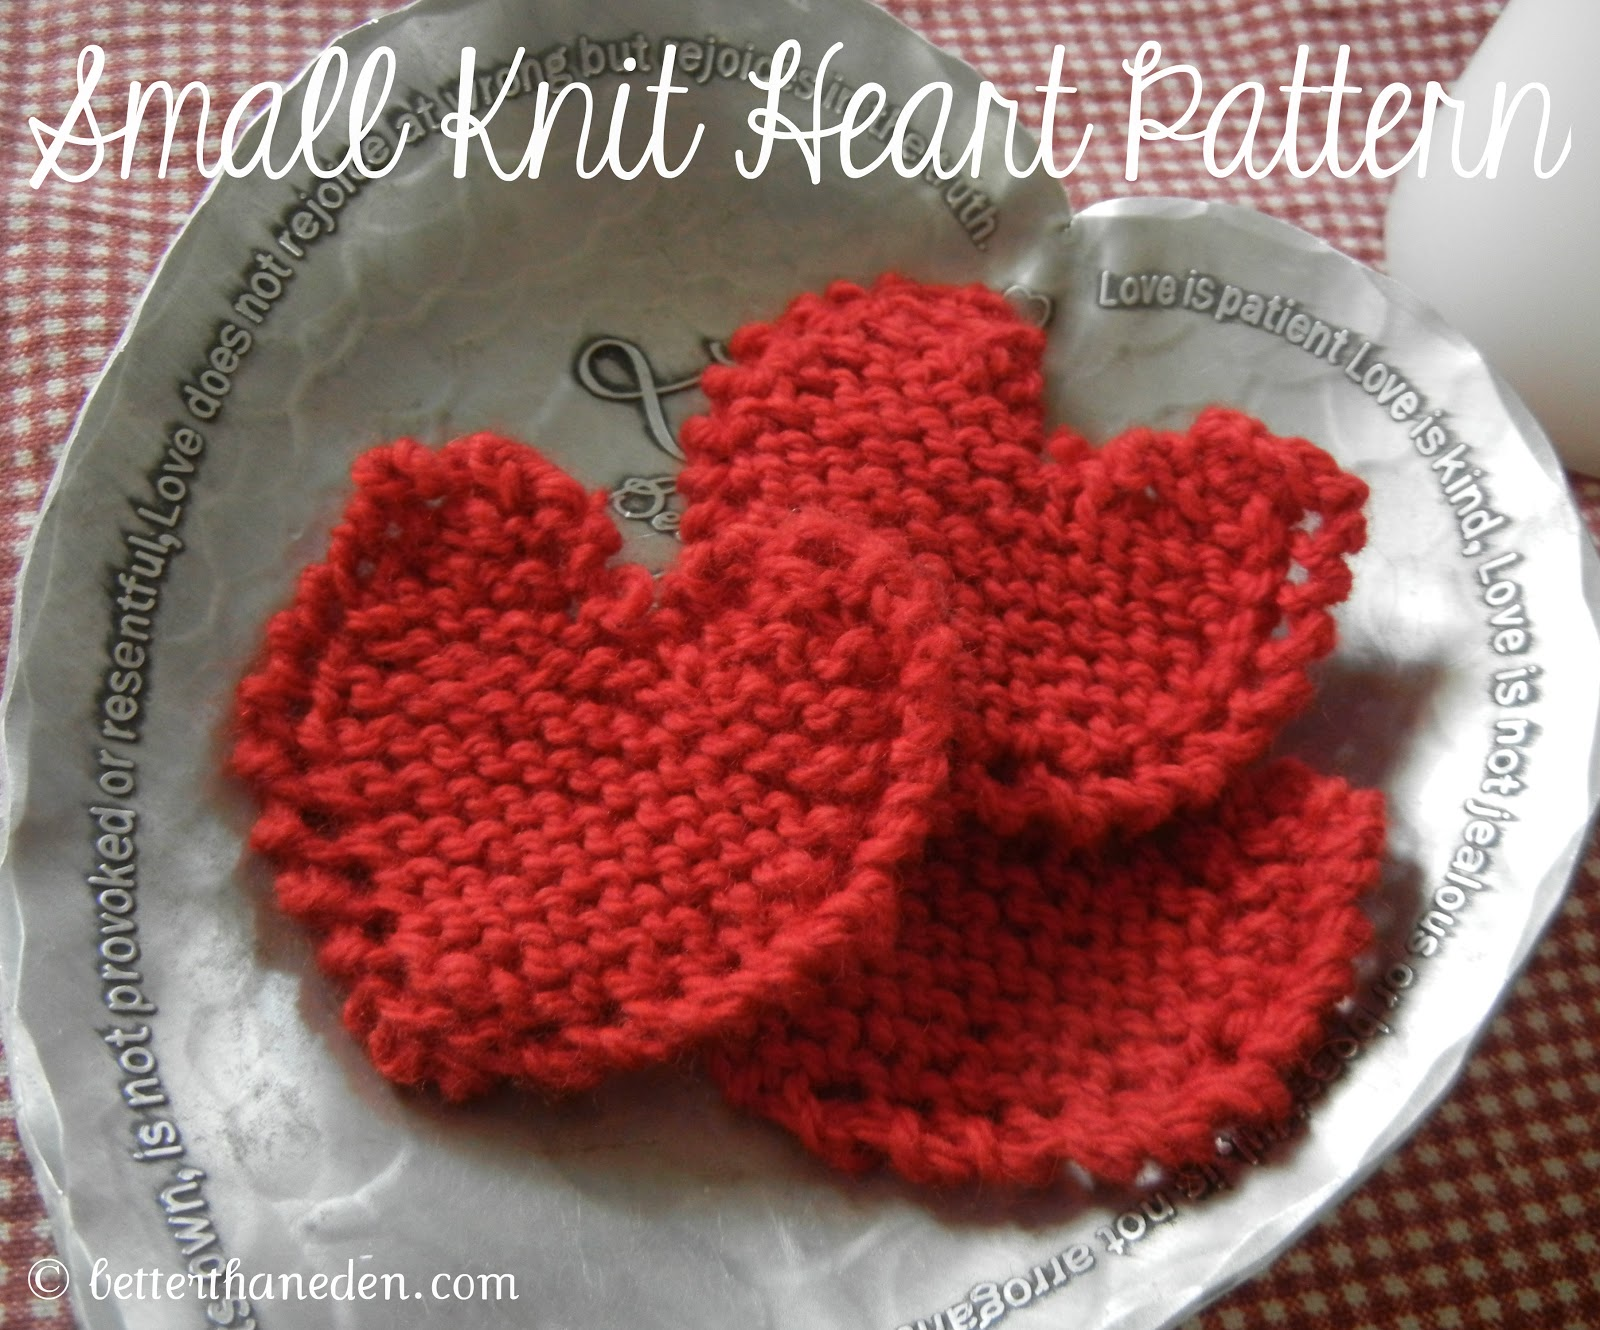 Knitting Patterns For Scarves Free : Pattern for a Small Knit Heart - Better Than Eden